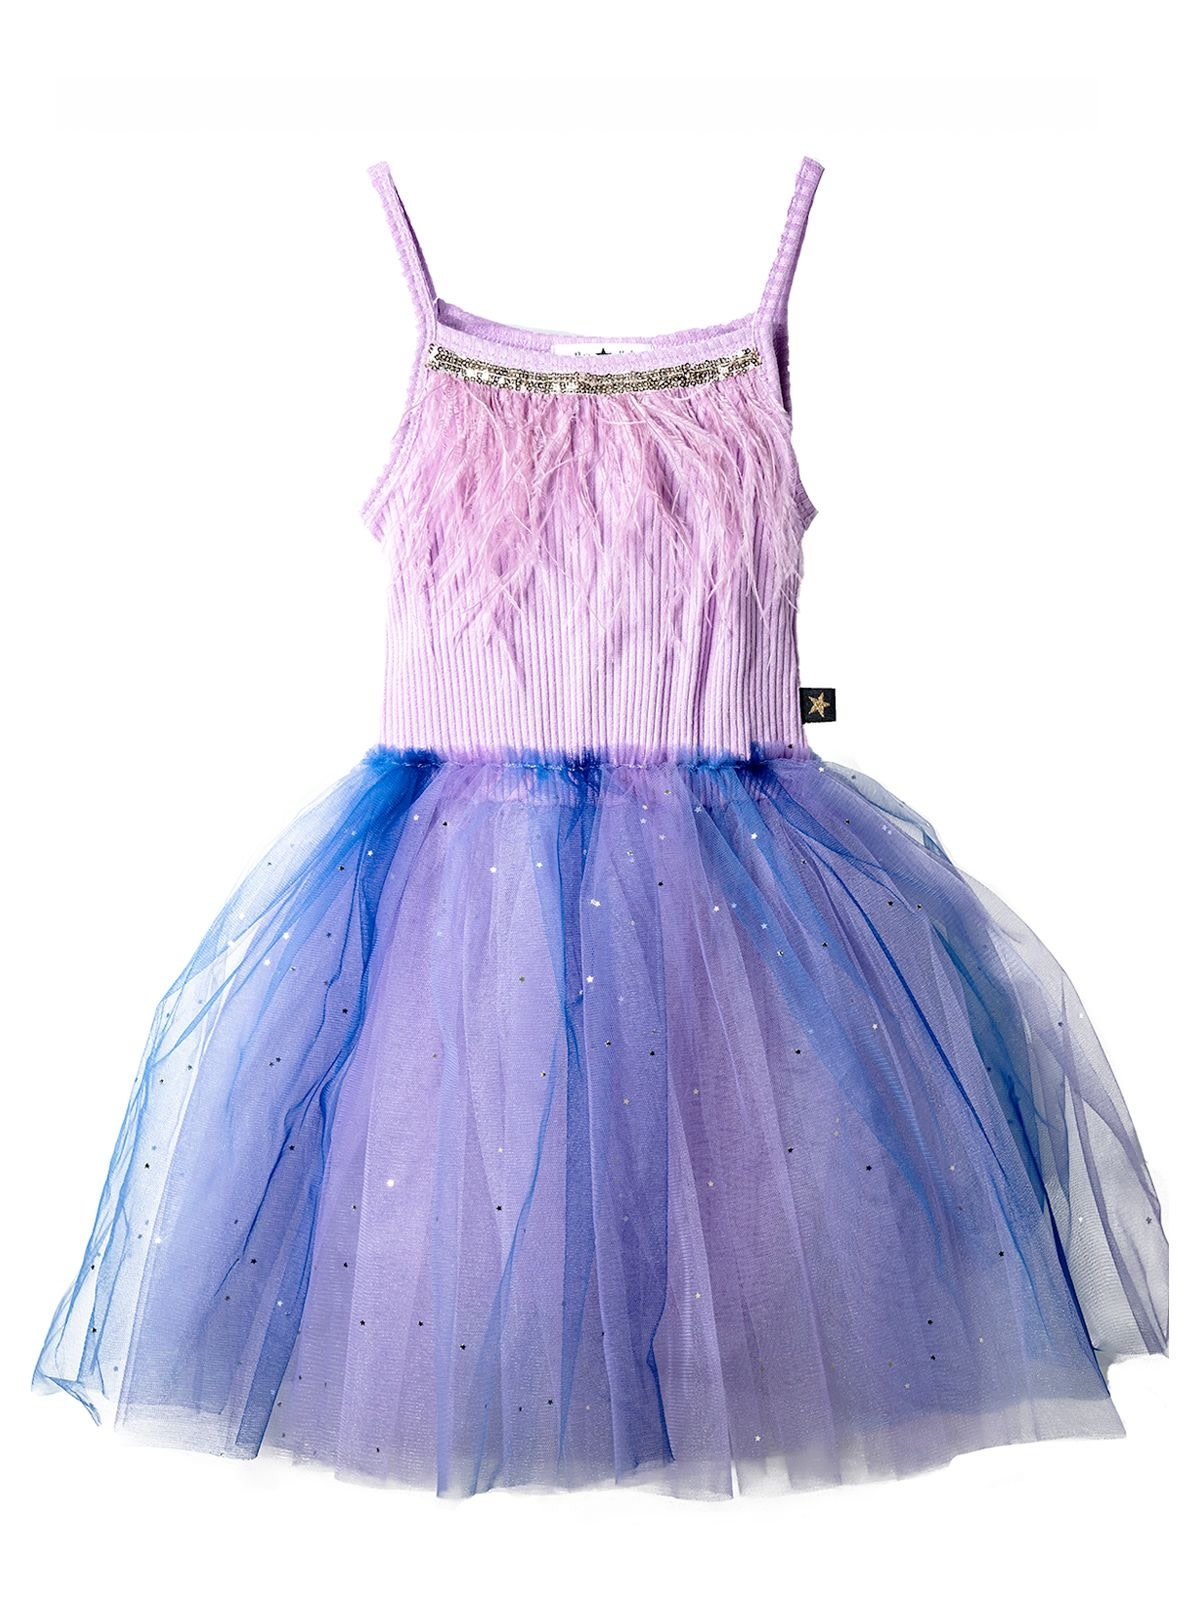 PETITE HAILEY Fur Gra Tutu Dress